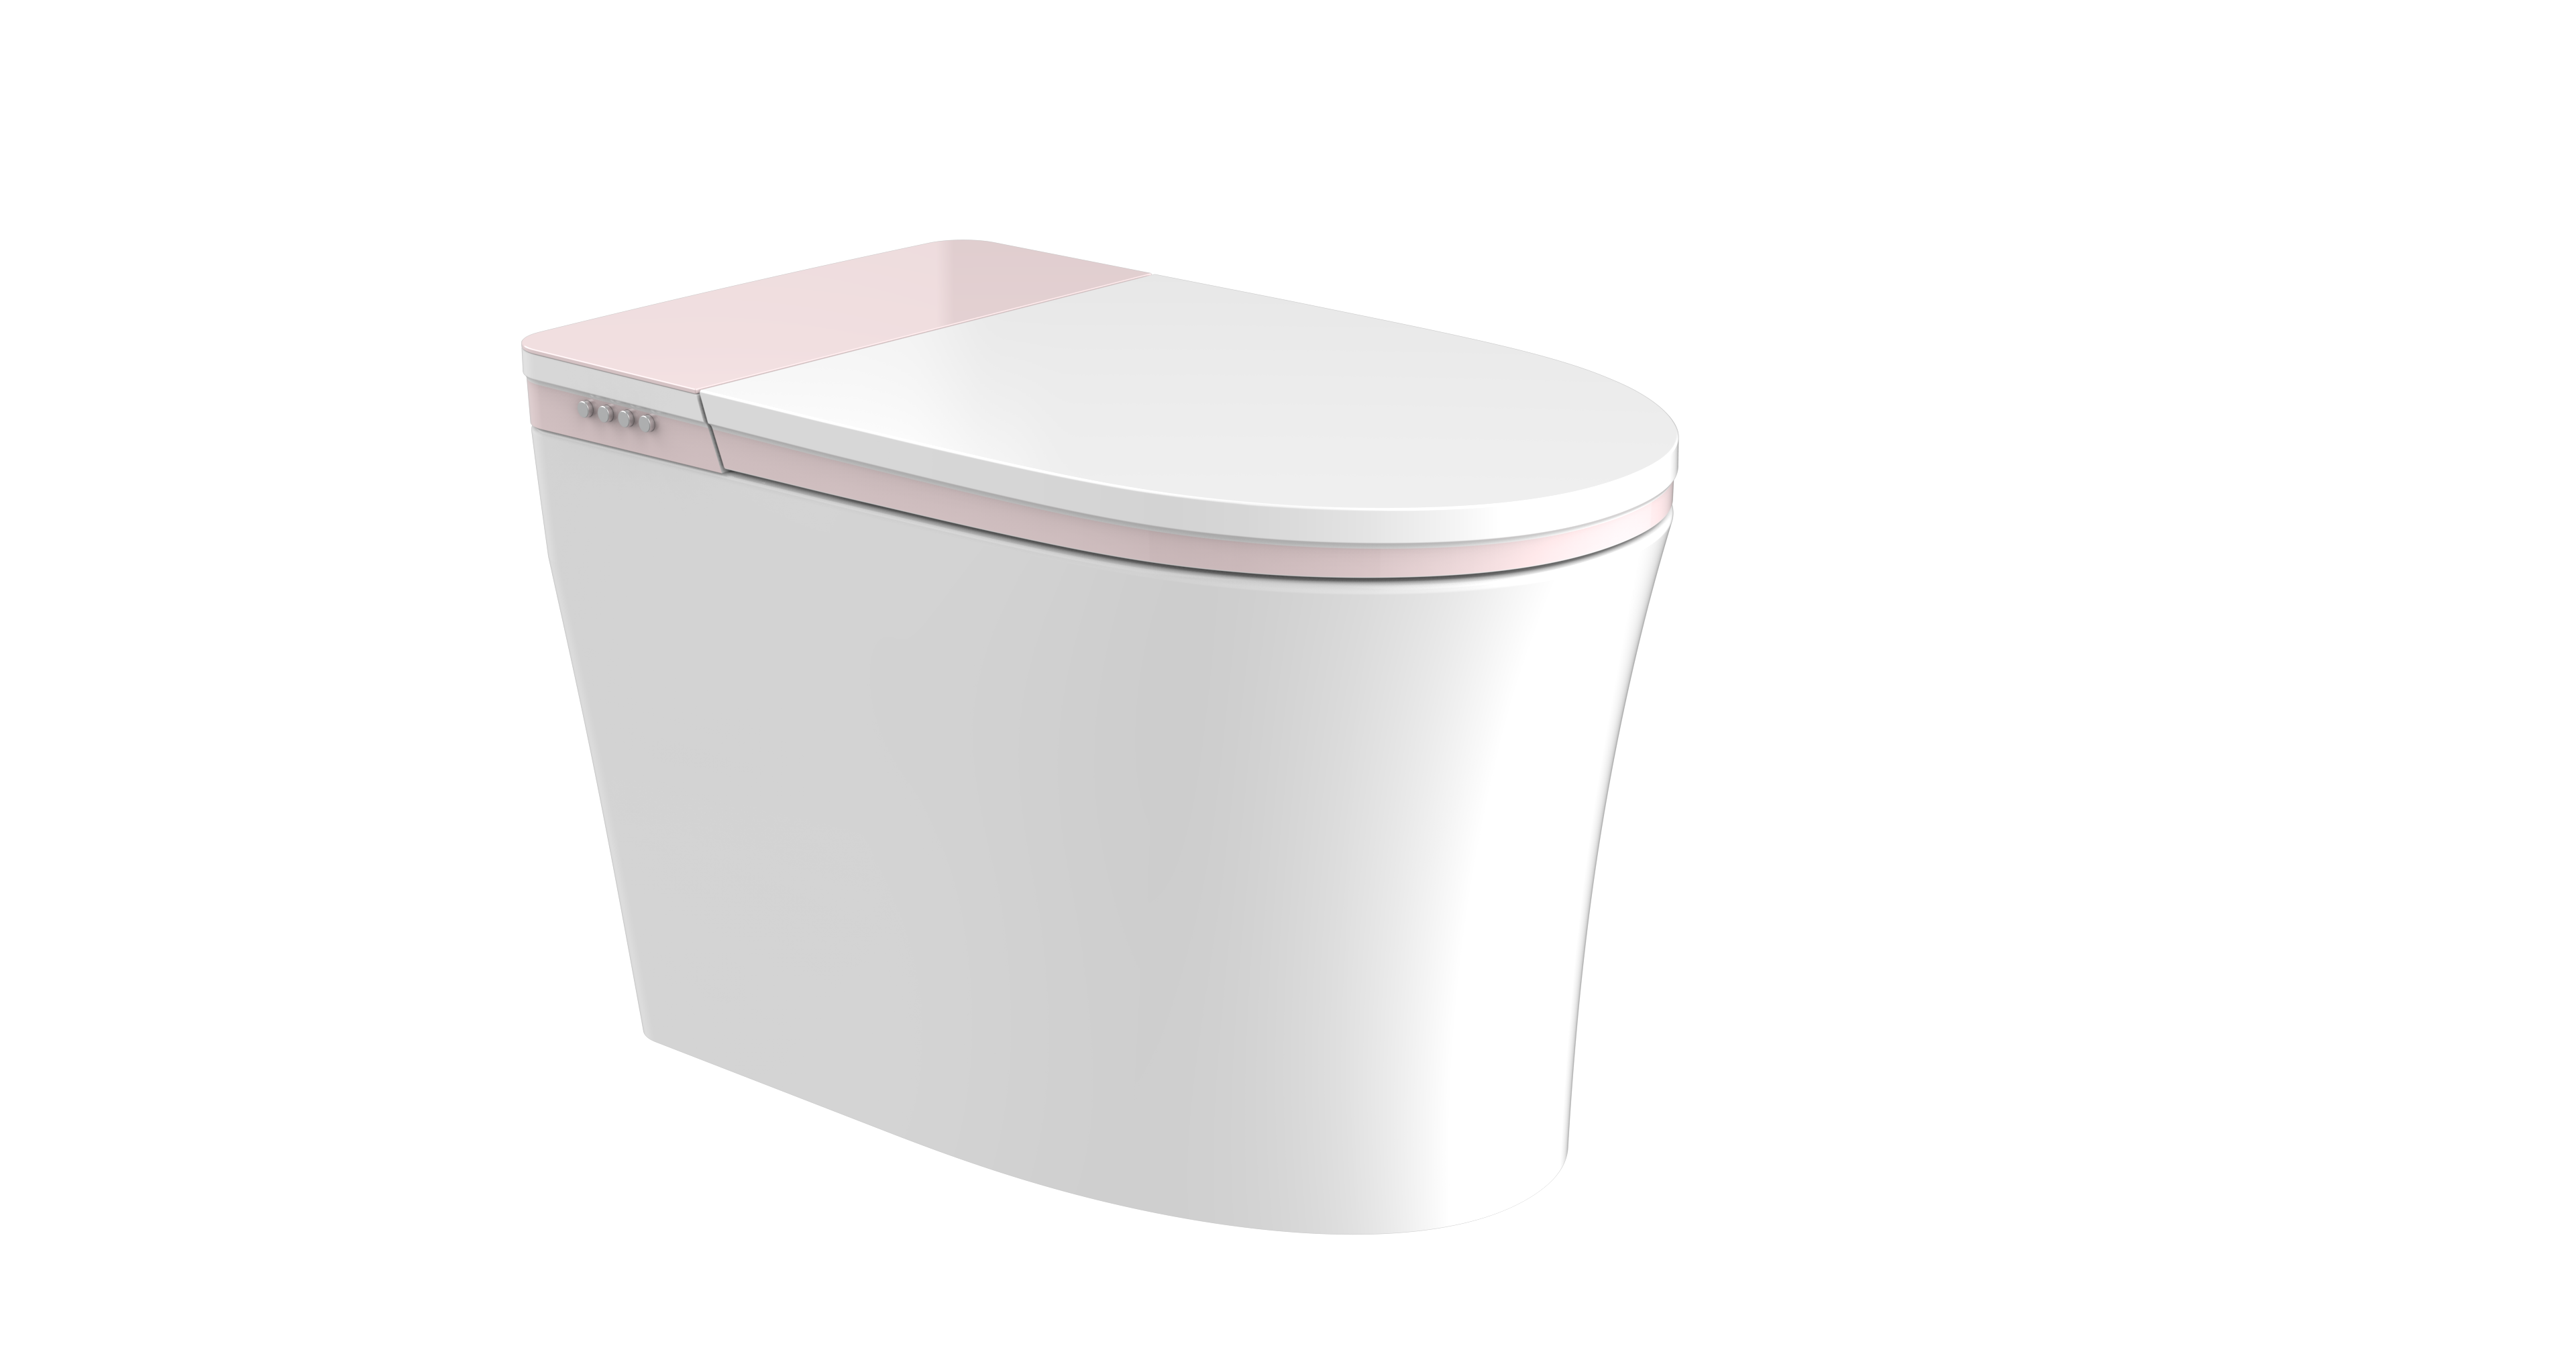 JT Accord 9011 bidet toilet with pink cover